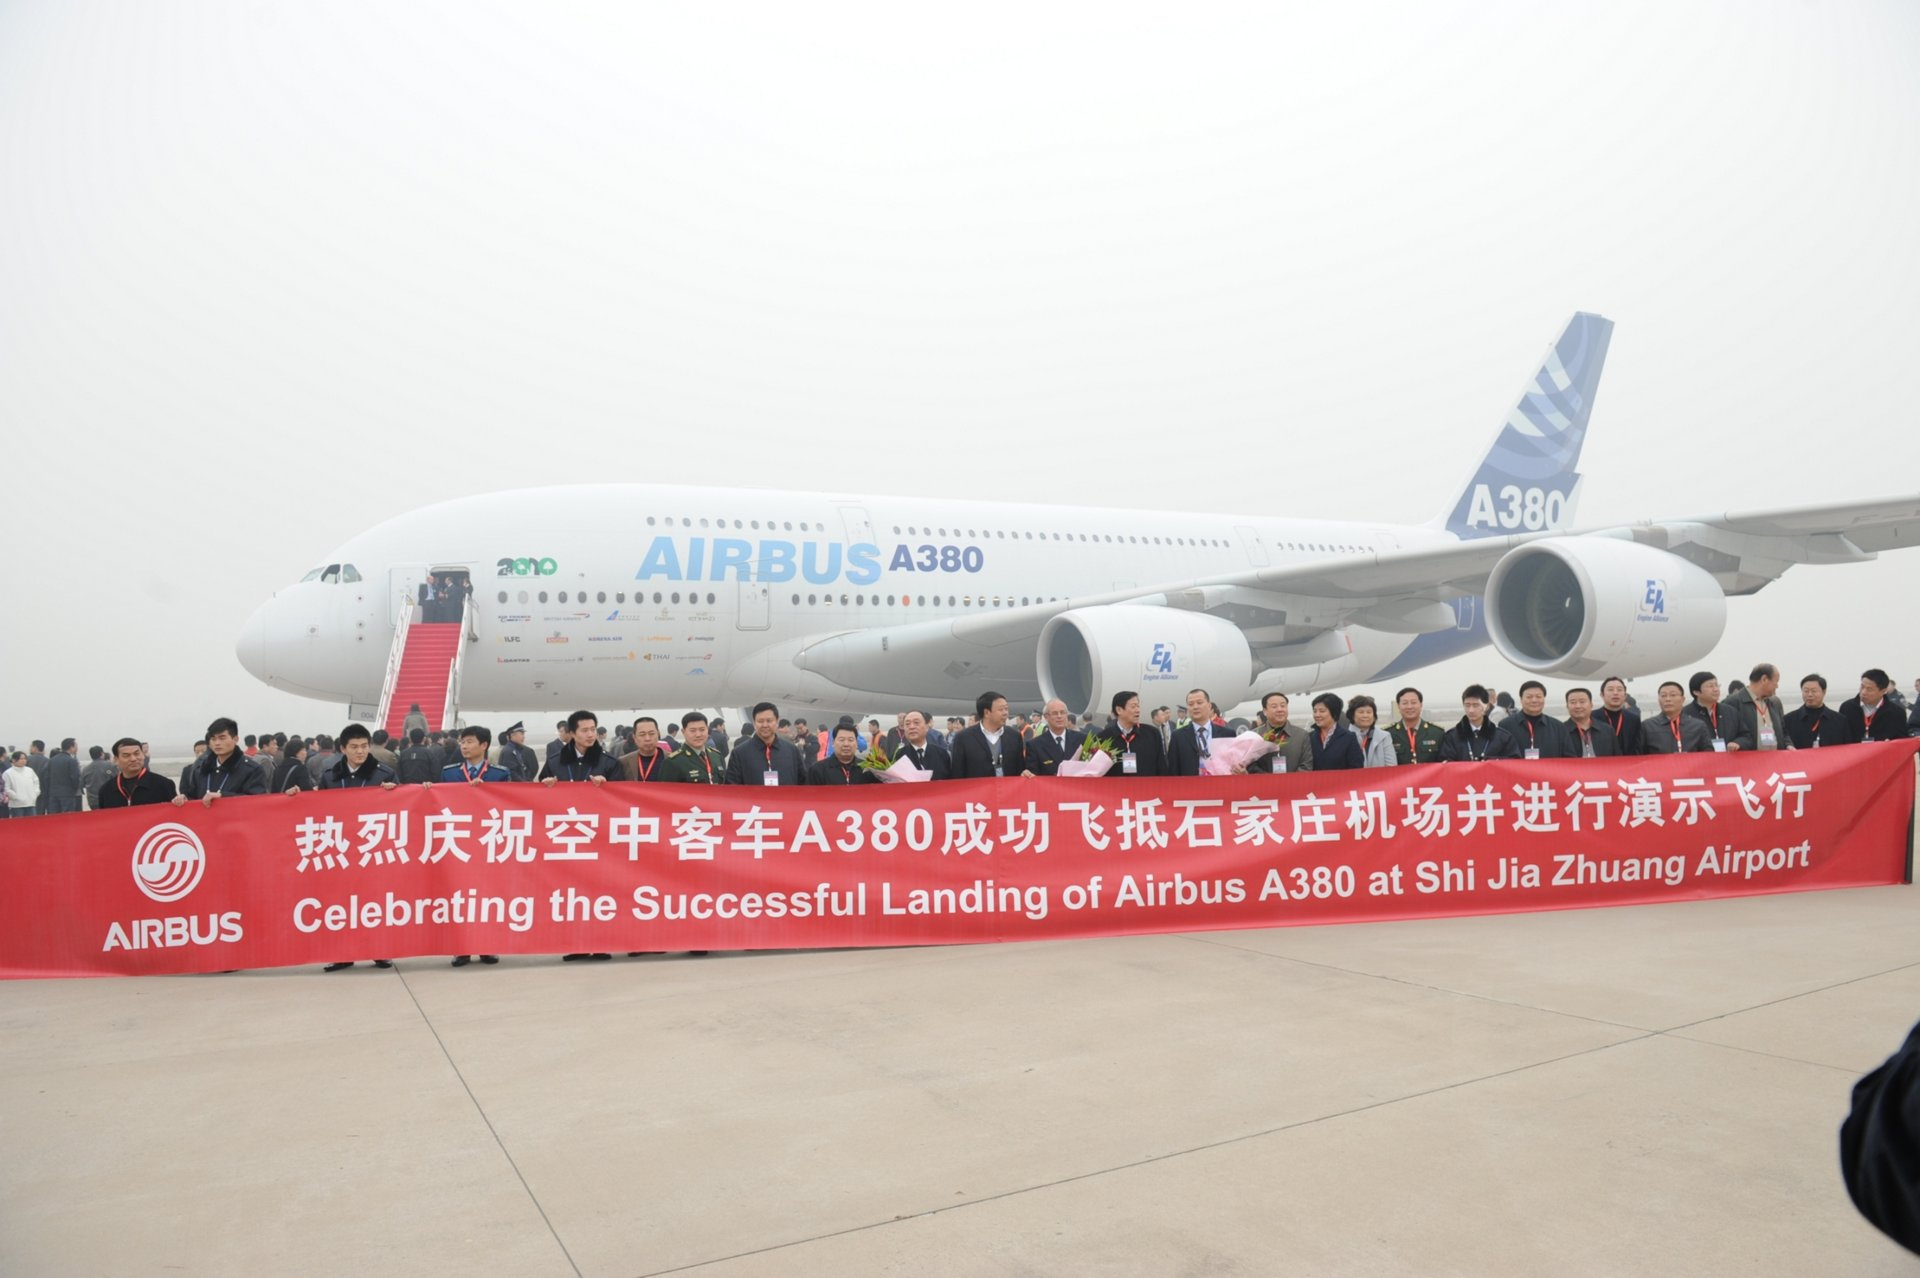 The A380 welcomed at Shi Jia Zhuang airport in the North of China (18 November 2010)